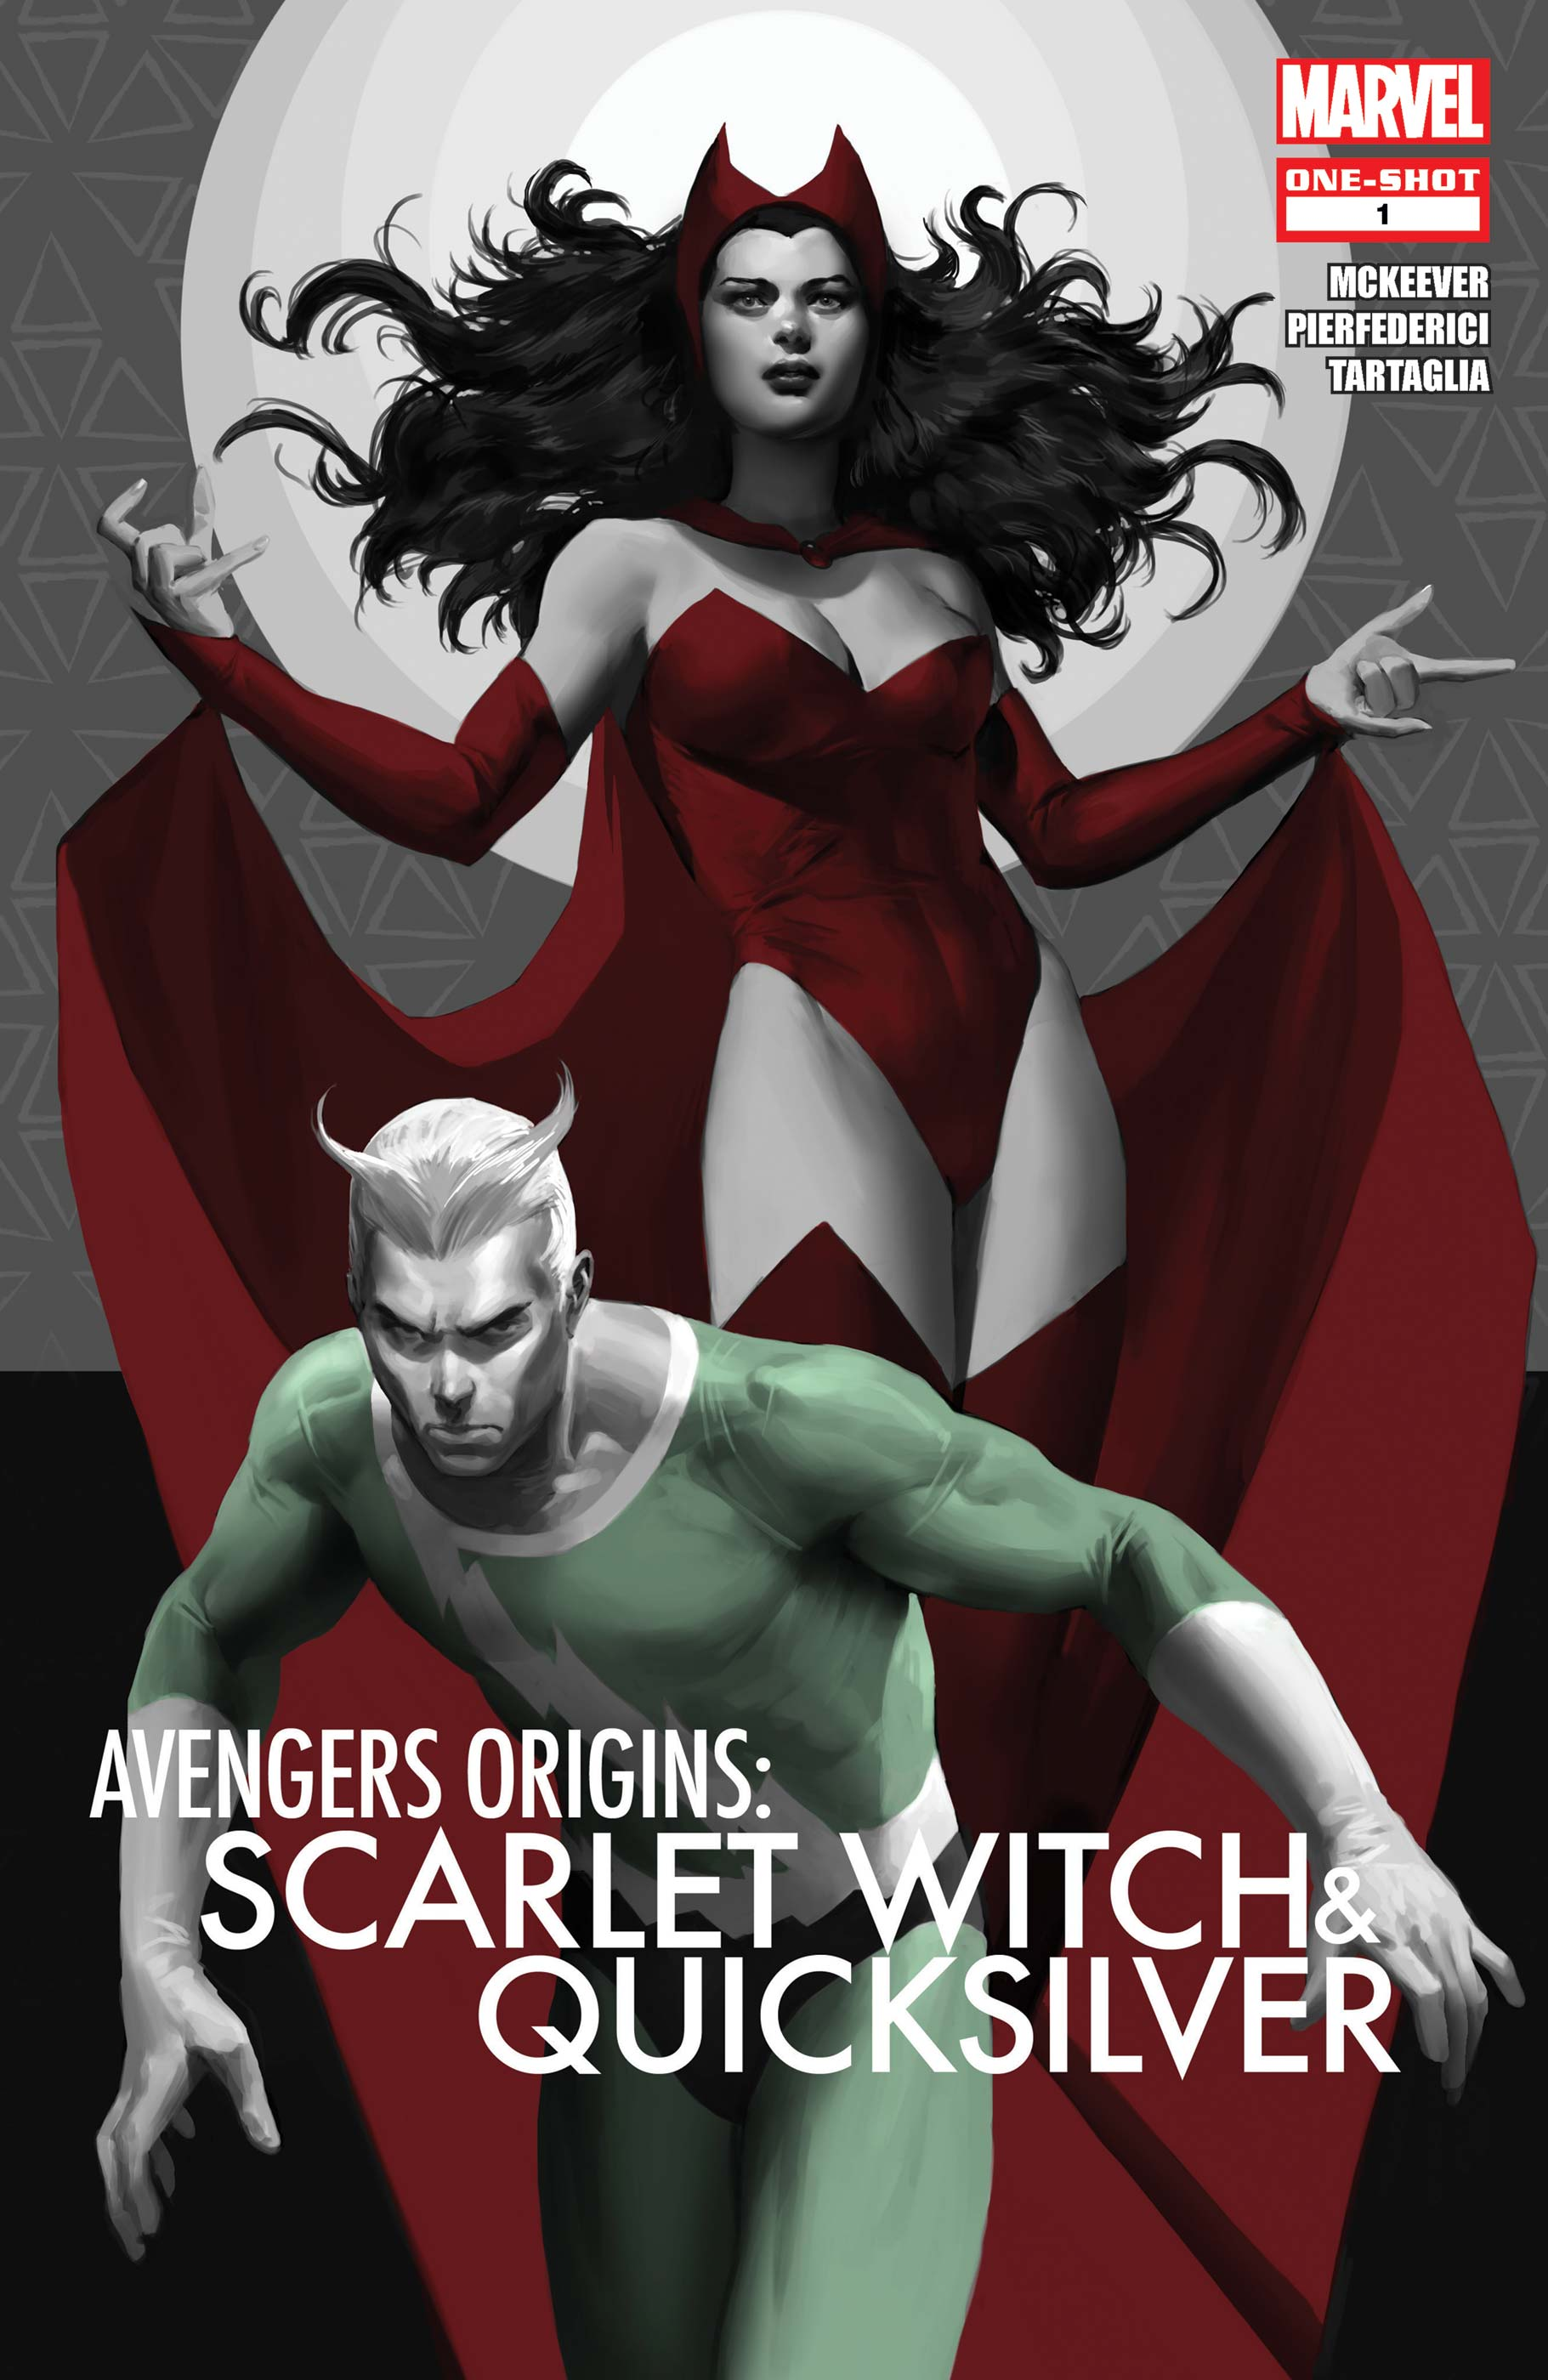 Scarlet and quicksilver witch marvel photo forecasting dress for on every day in 2019